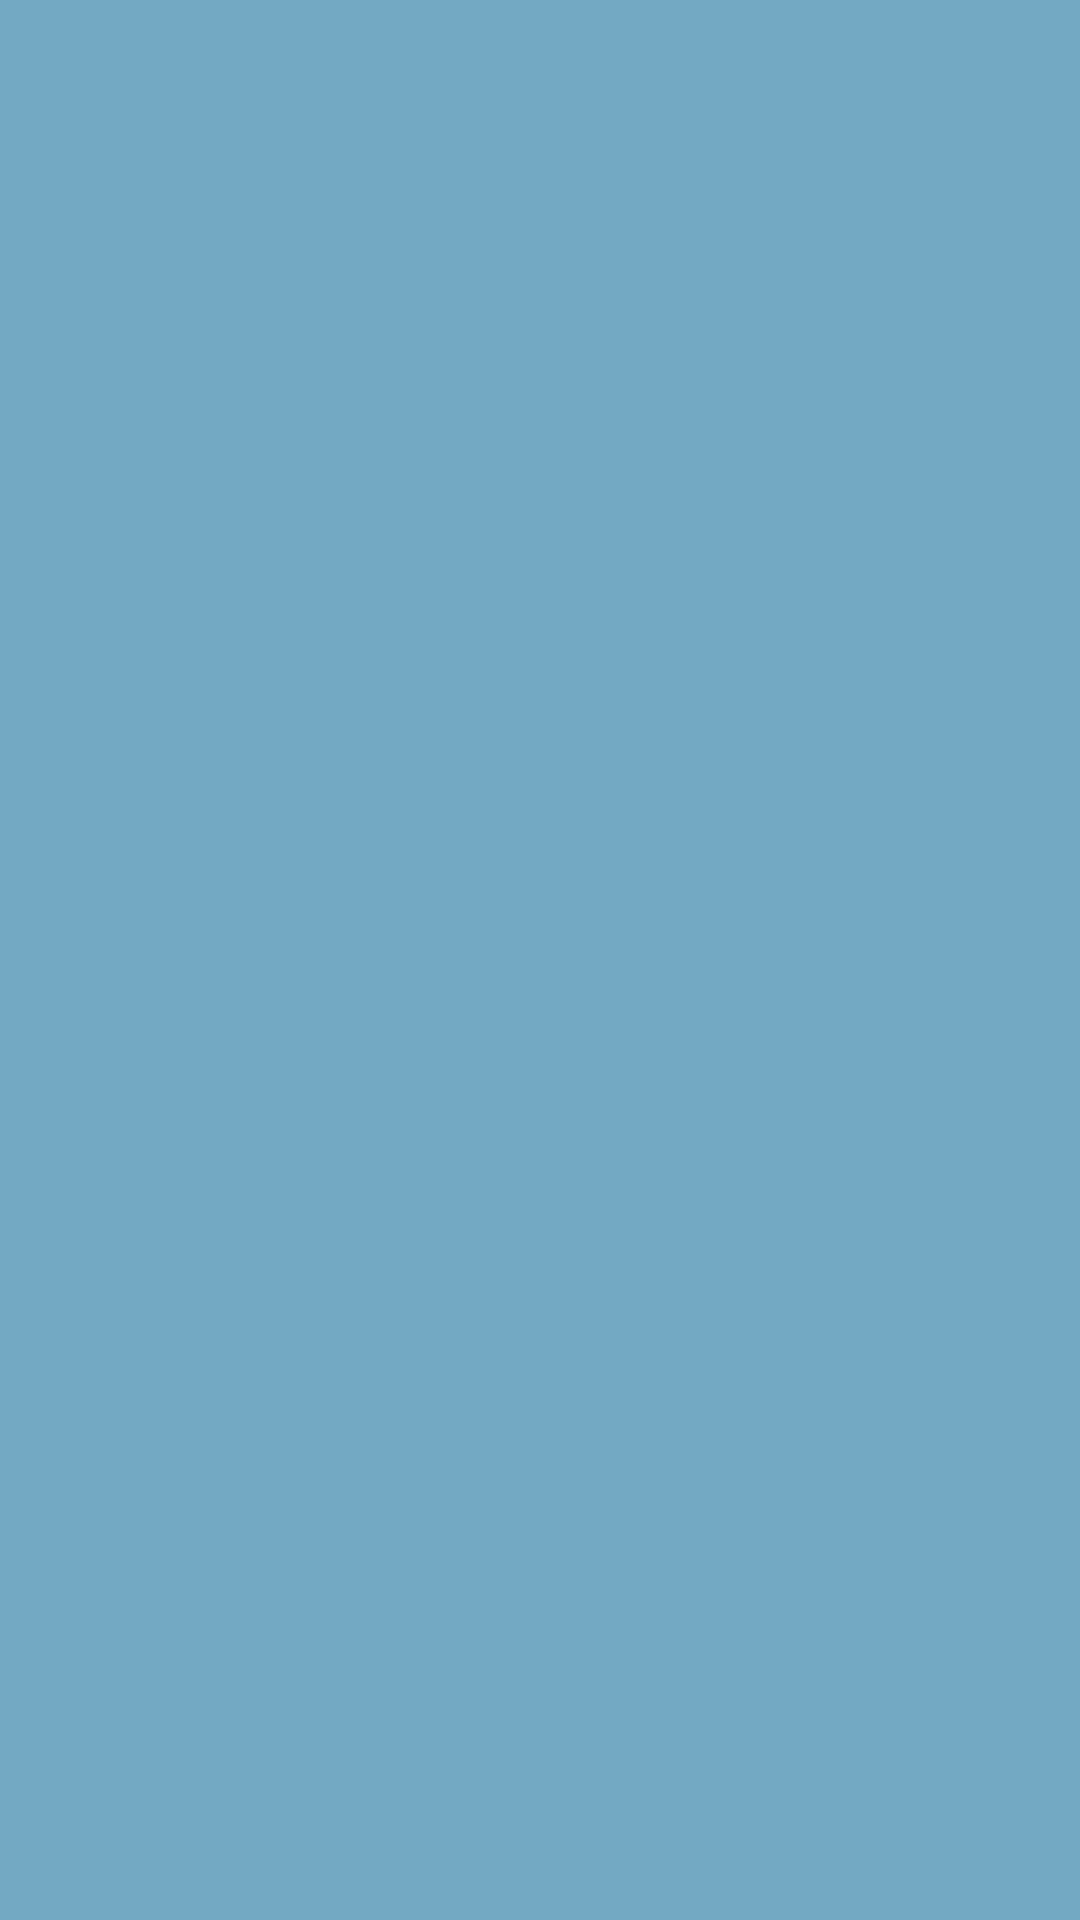 1080x1920 Moonstone Blue Solid Color Background